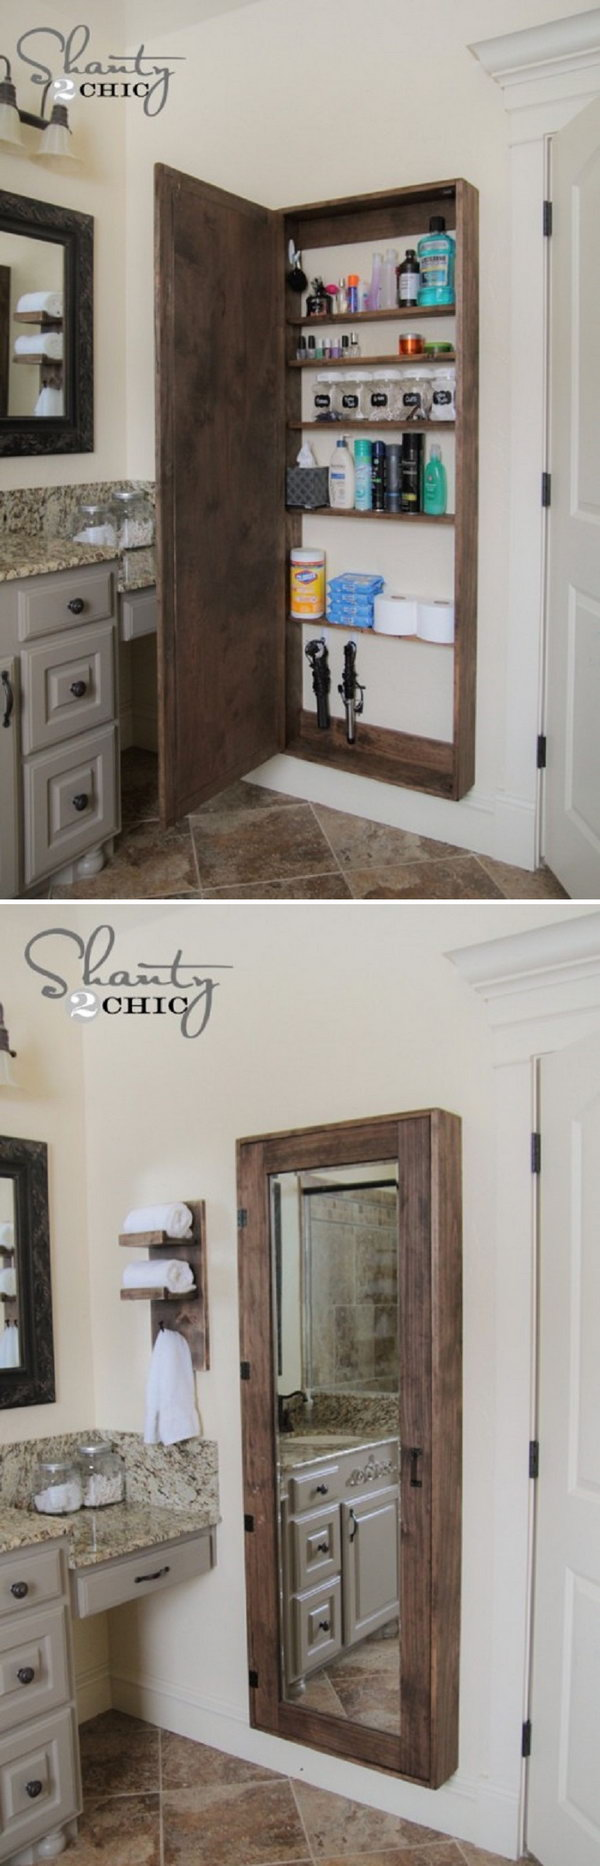 33 Out Of The Box And Trend Setting Hidden Storage Ideas For